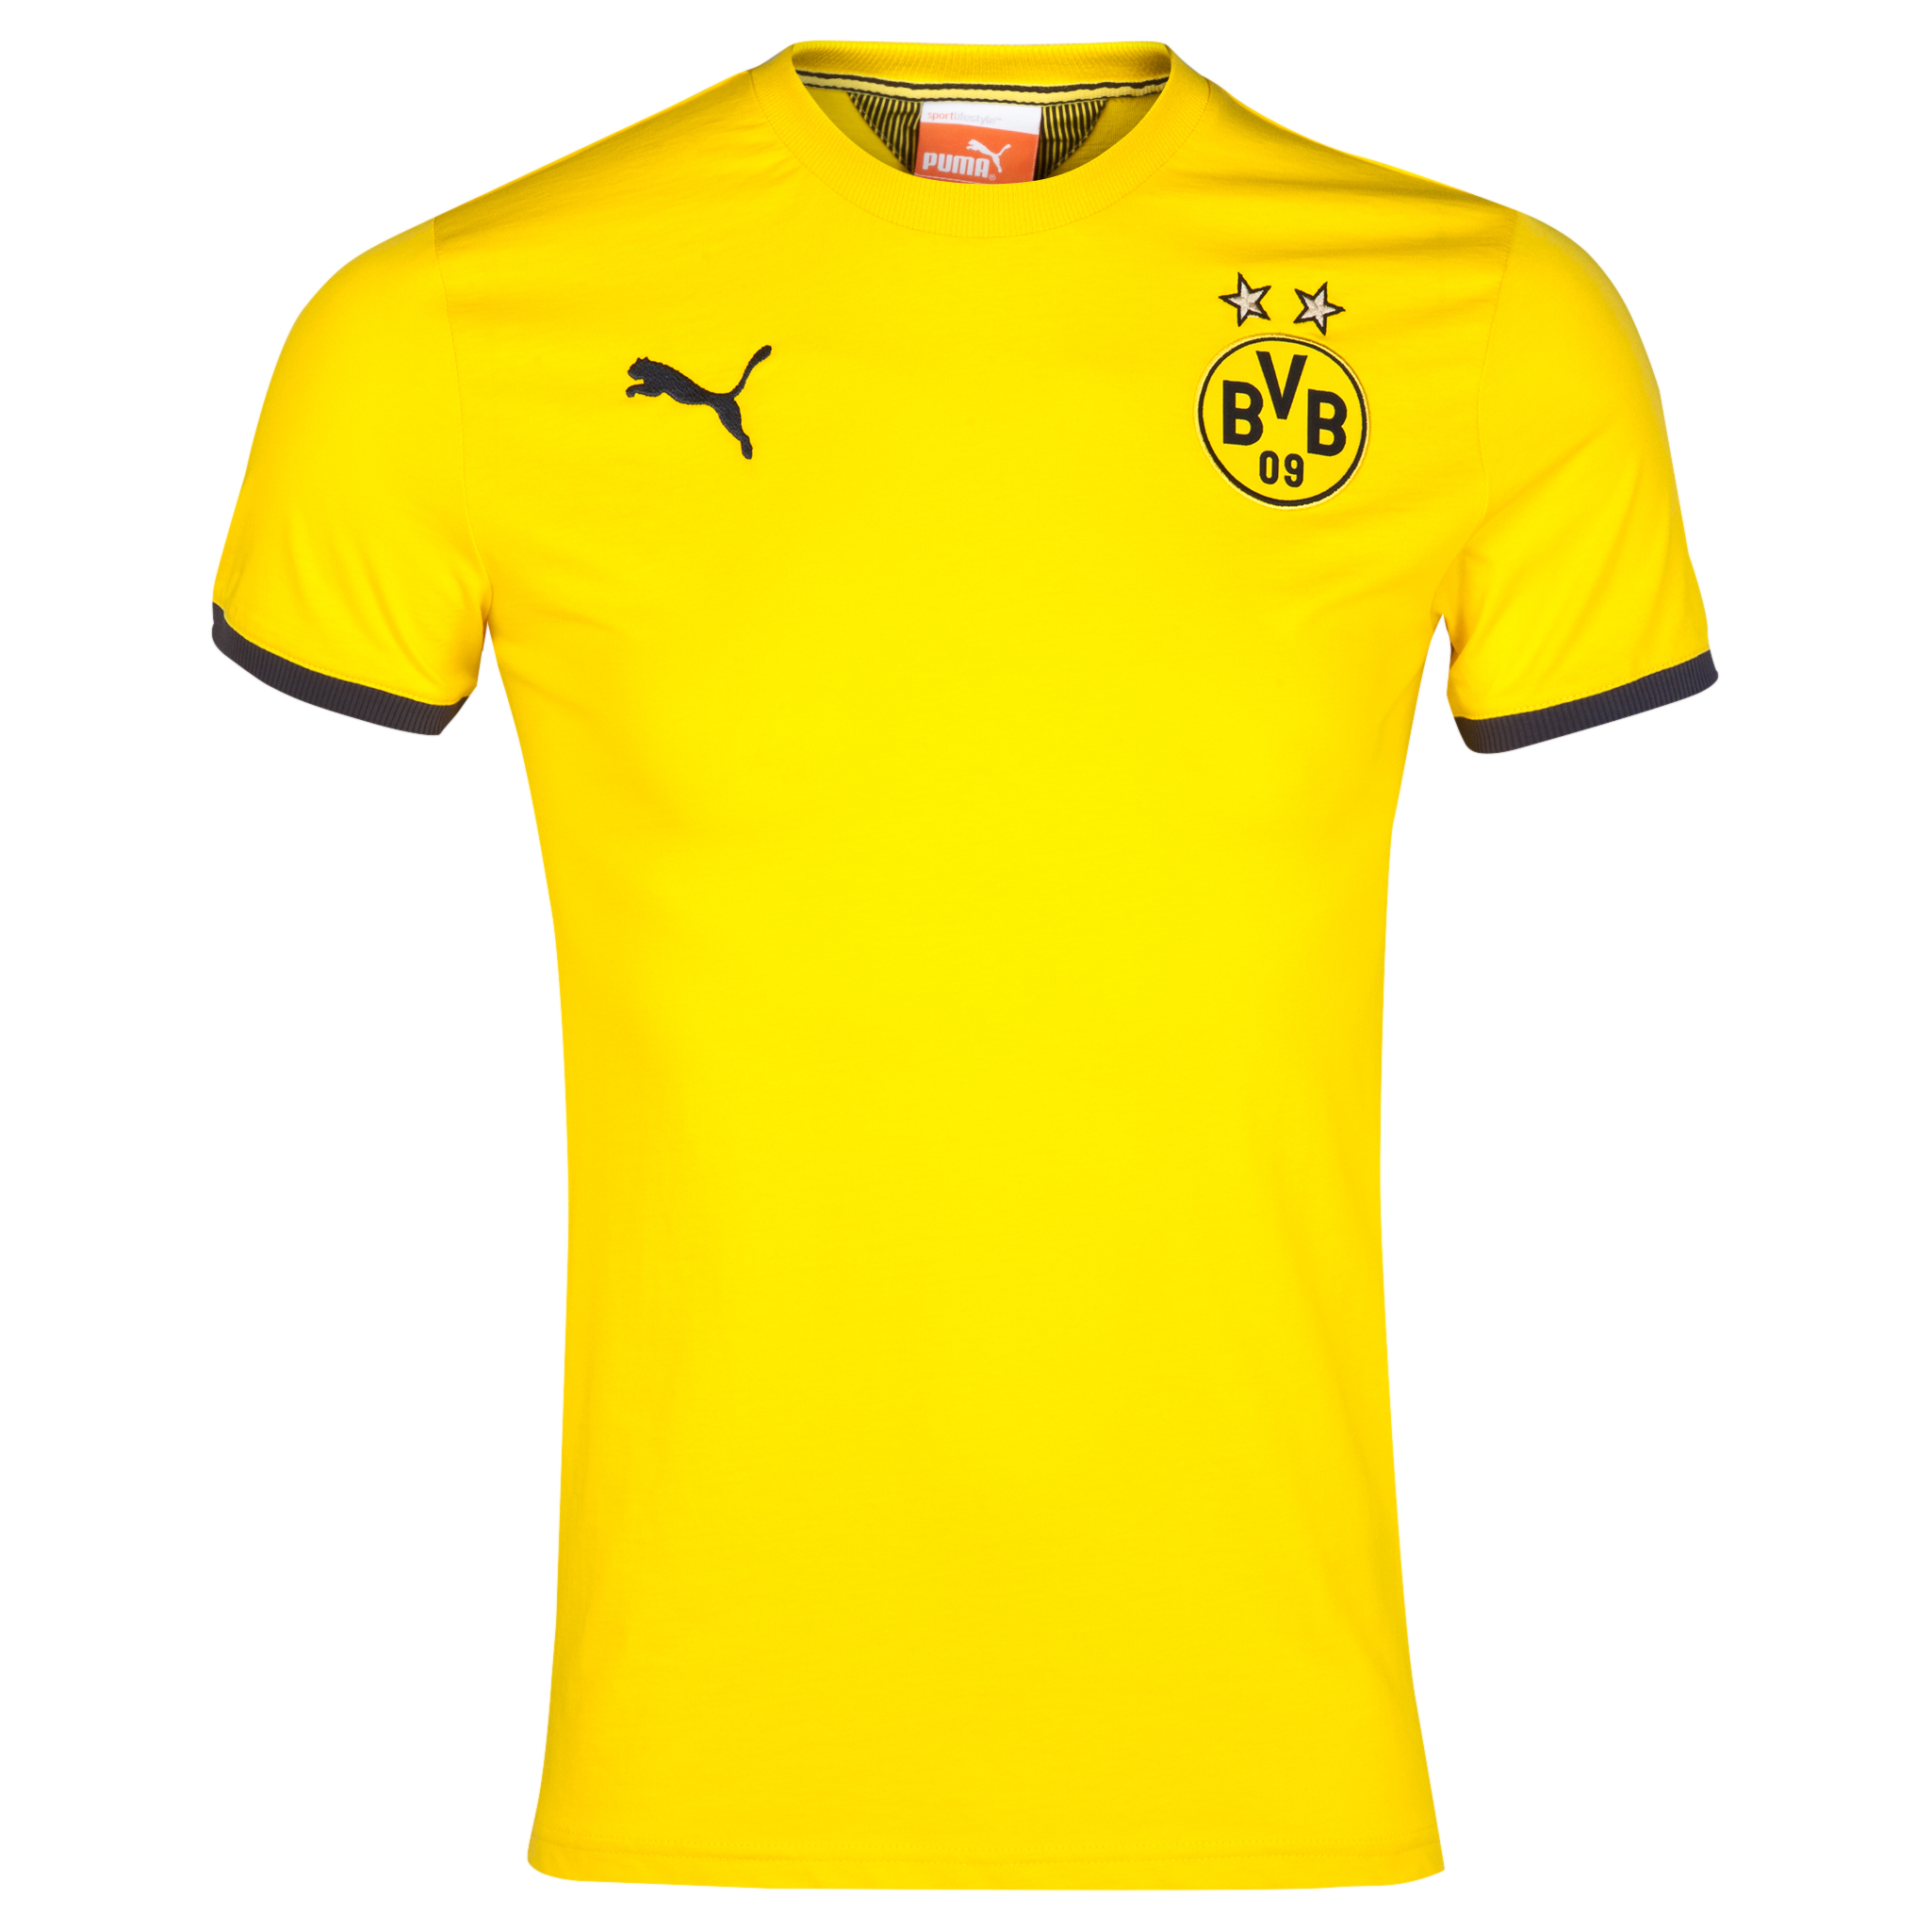 BVB T7 T-Shirt Yellow